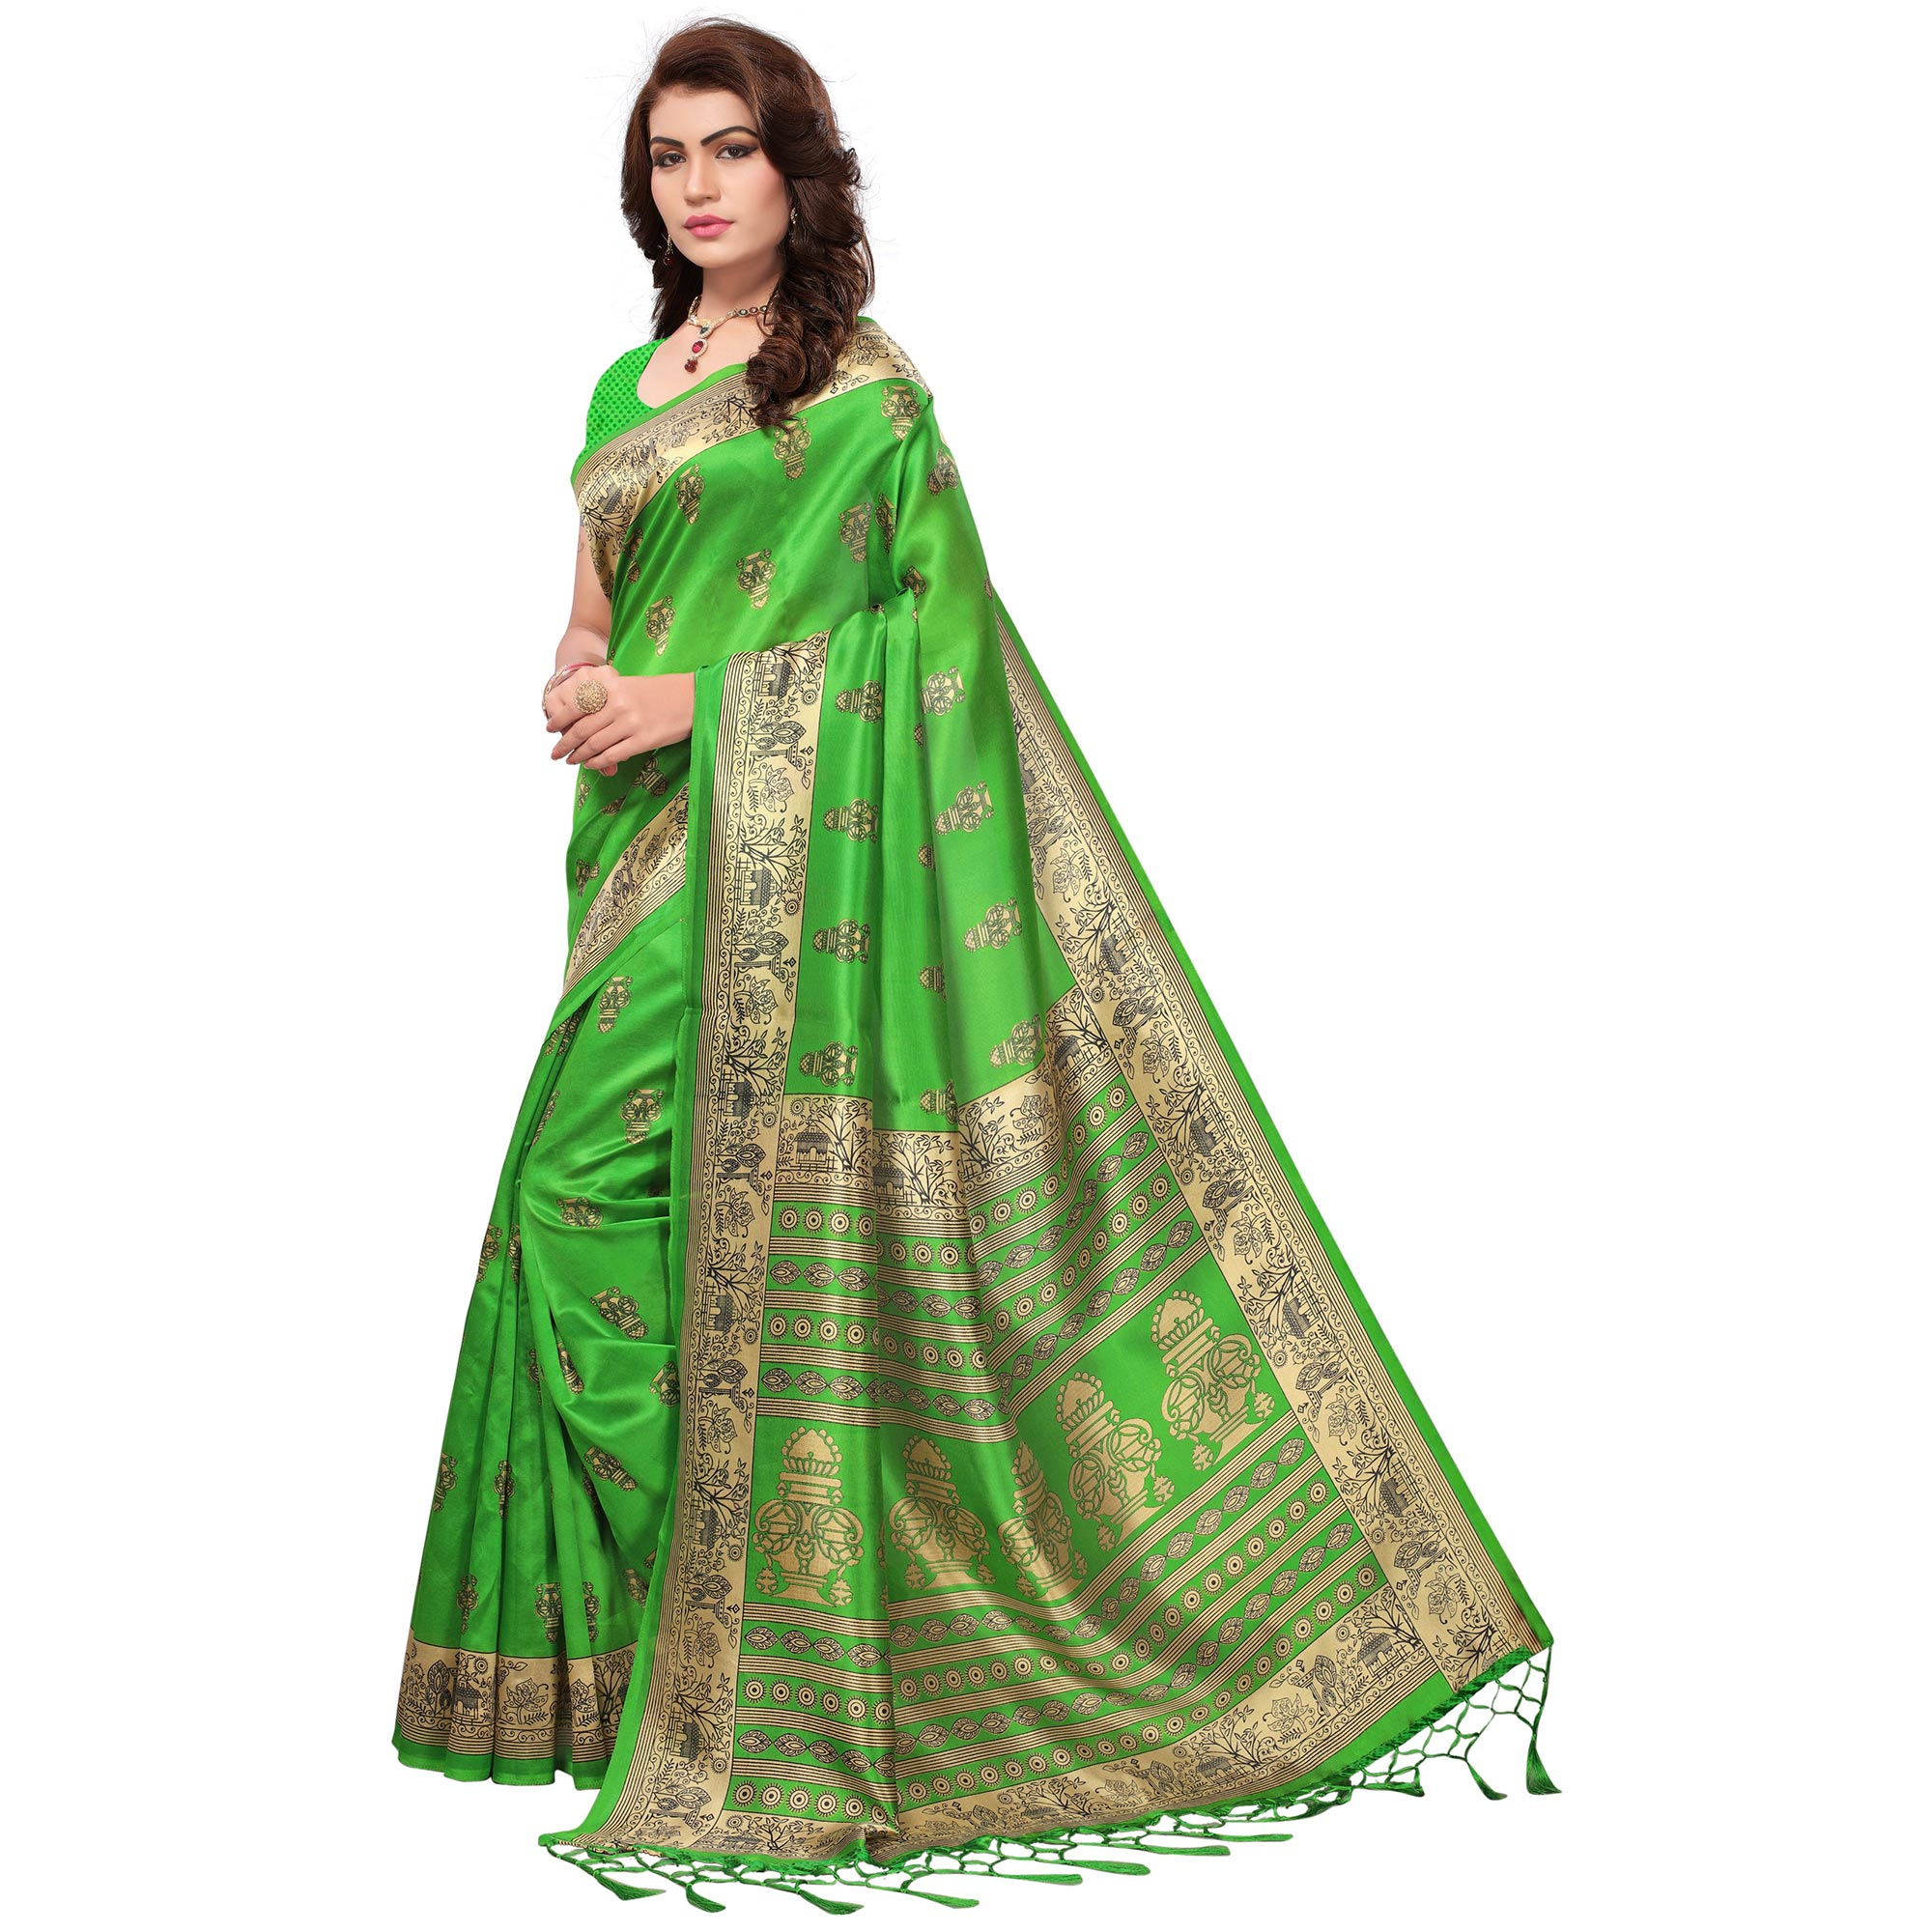 Blooming Green Colored Festive Wear Printed Mysore Art Silk Saree